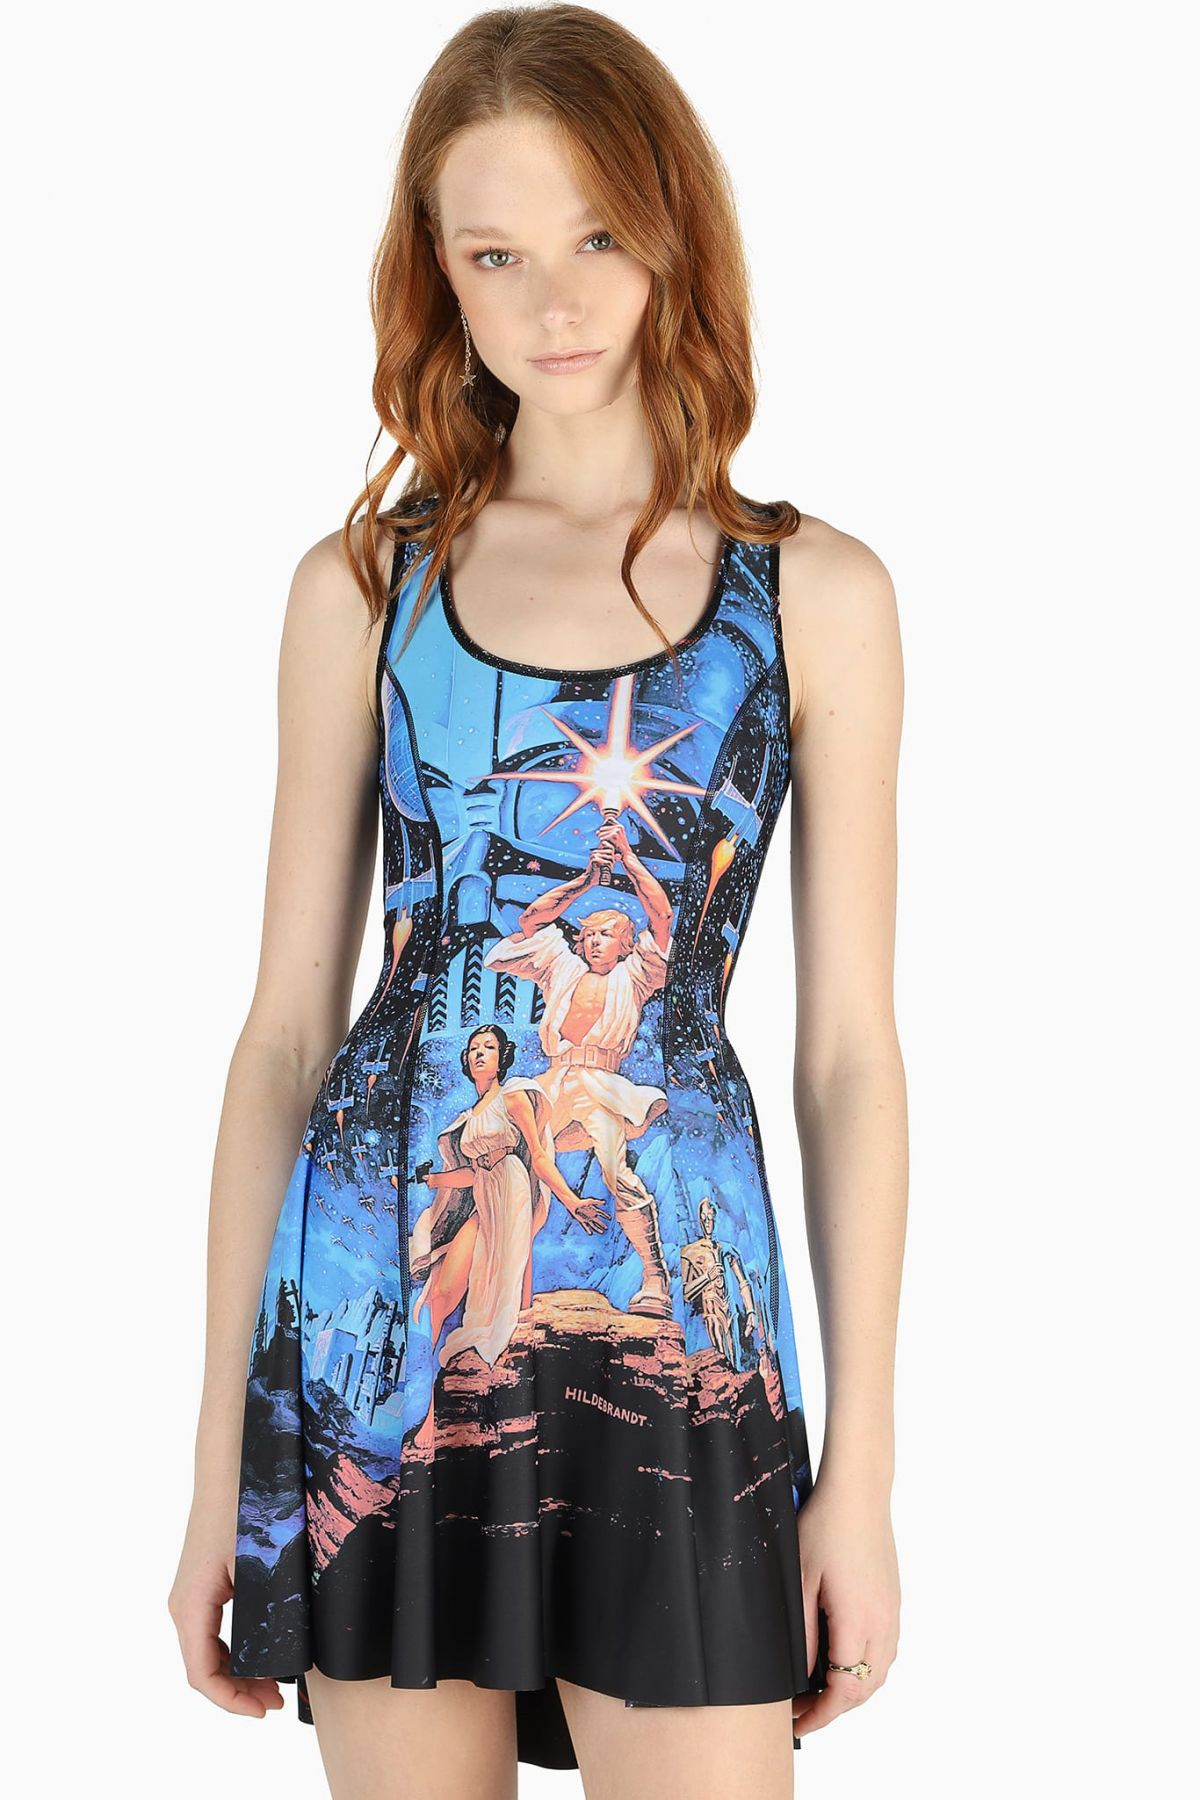 BlackMilk Clothing Star Wars Inside Out Collection